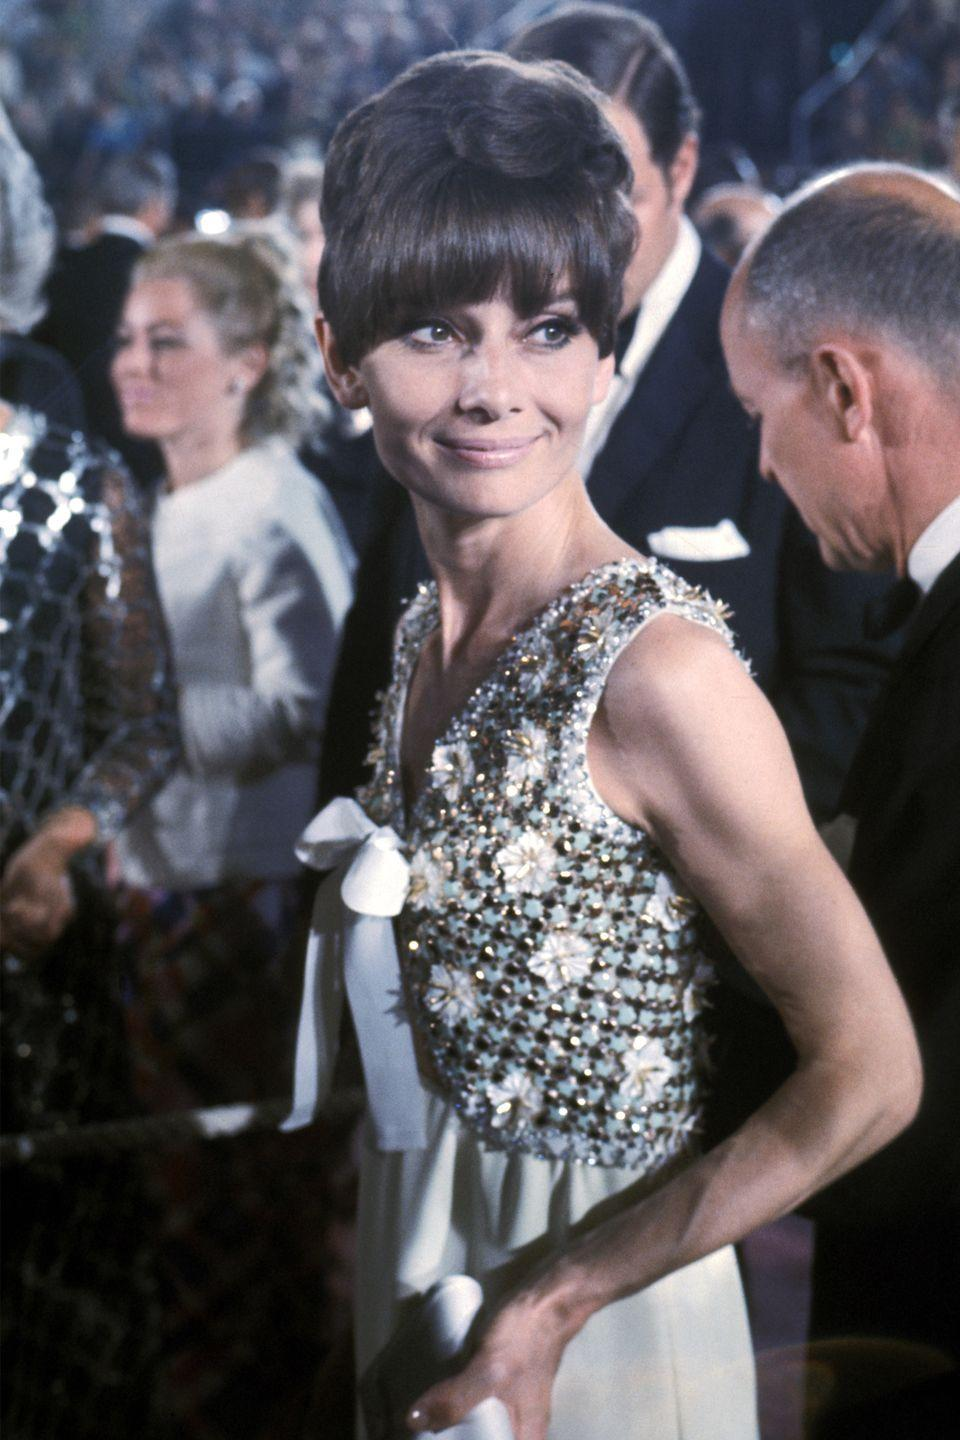 <p>While Audrey Hepburn was largely staying out of the limelight to raise her family, she still made an appearance at the 1975 Oscars, relying on the old faithful, Givenchy, to create another memorable look. </p>